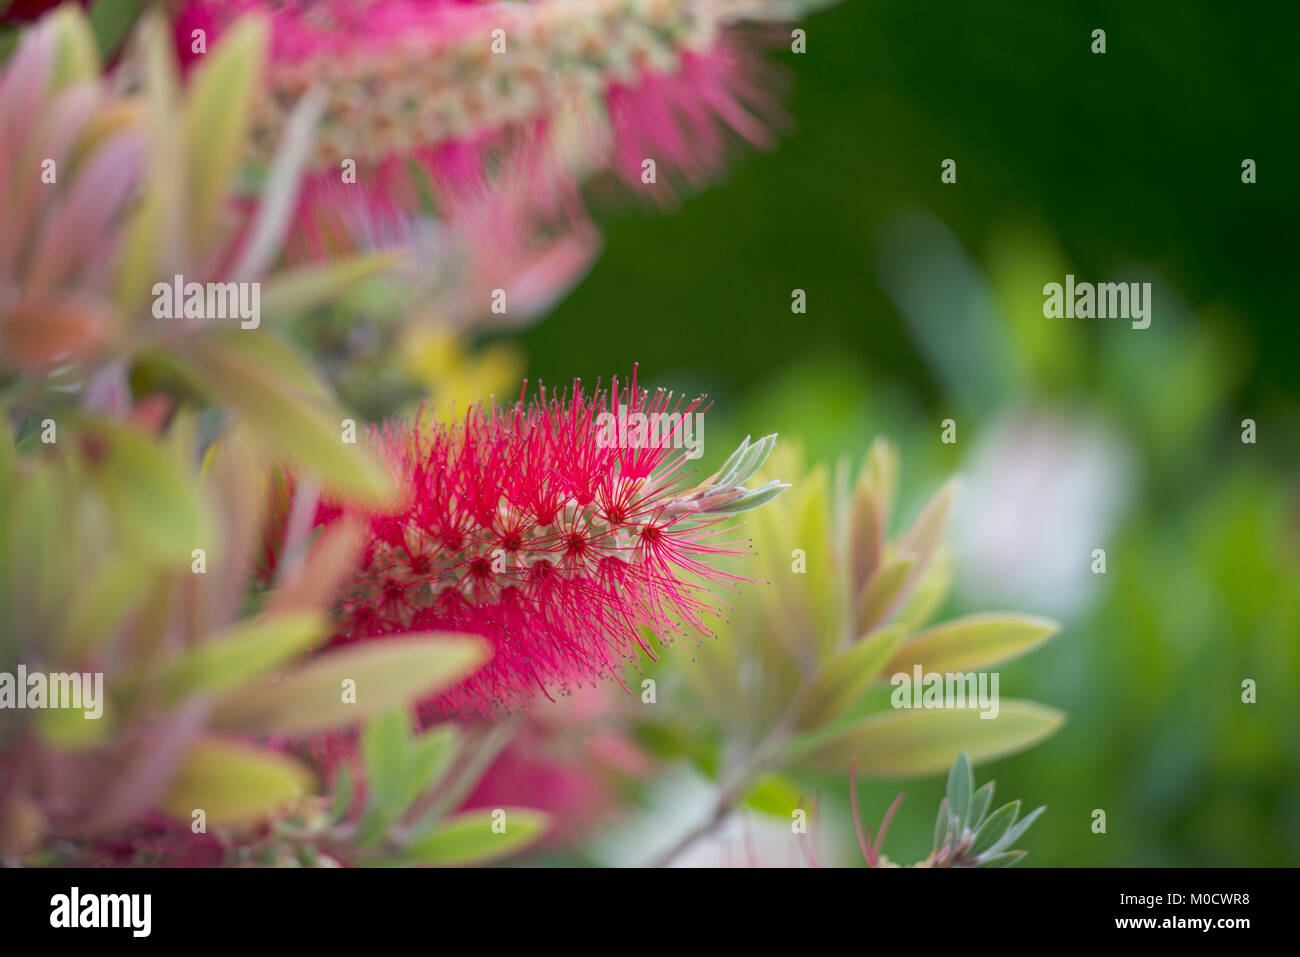 Fluffy Pink Flowers Stock Photos Fluffy Pink Flowers Stock Images